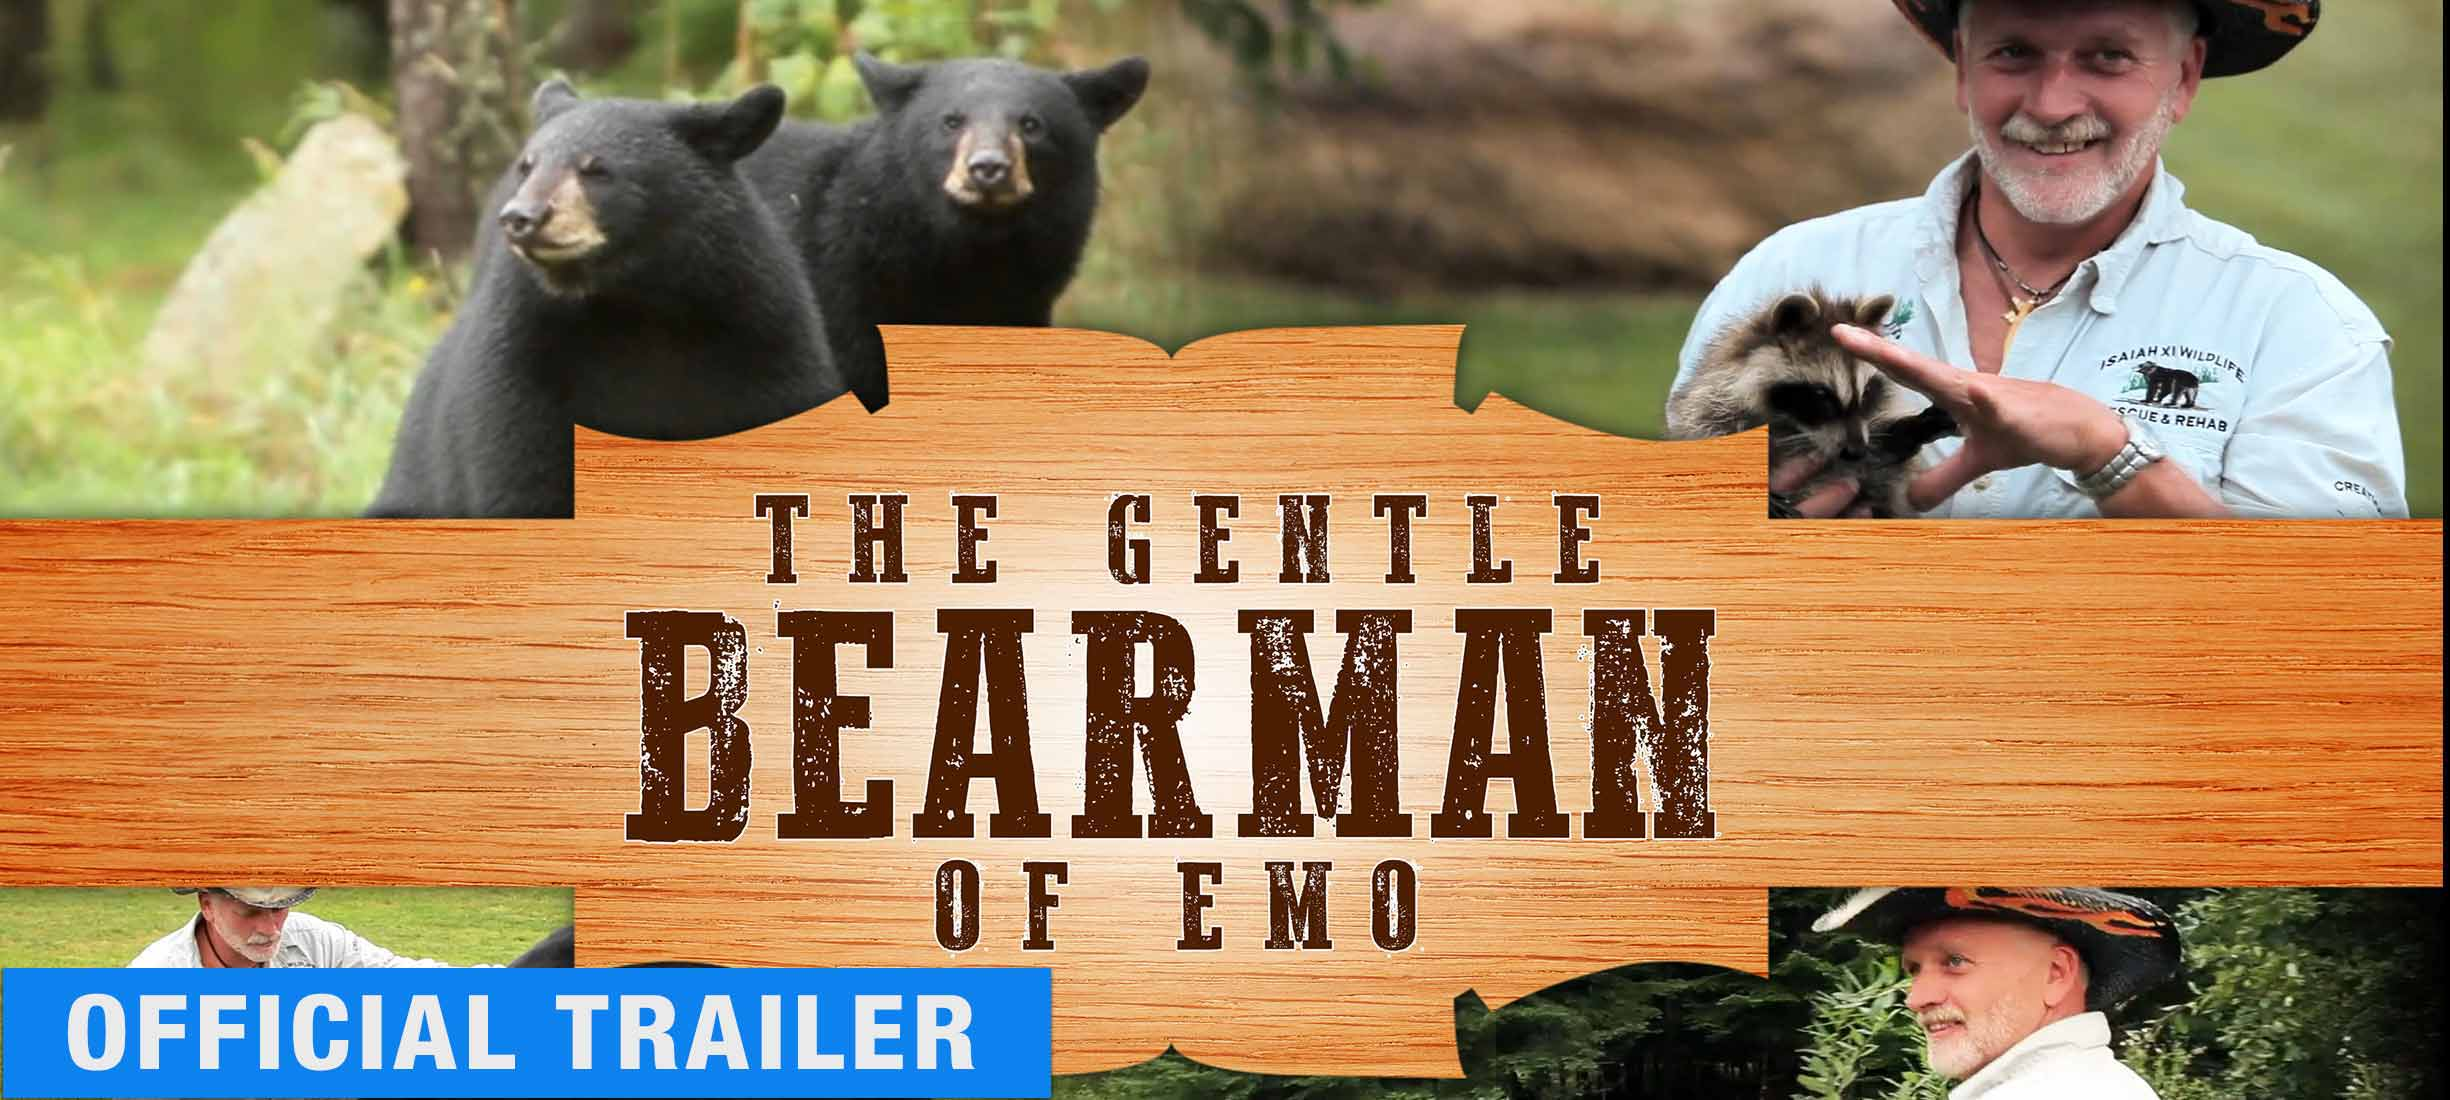 The Gentle Bear Man of Emo - Official Trailer